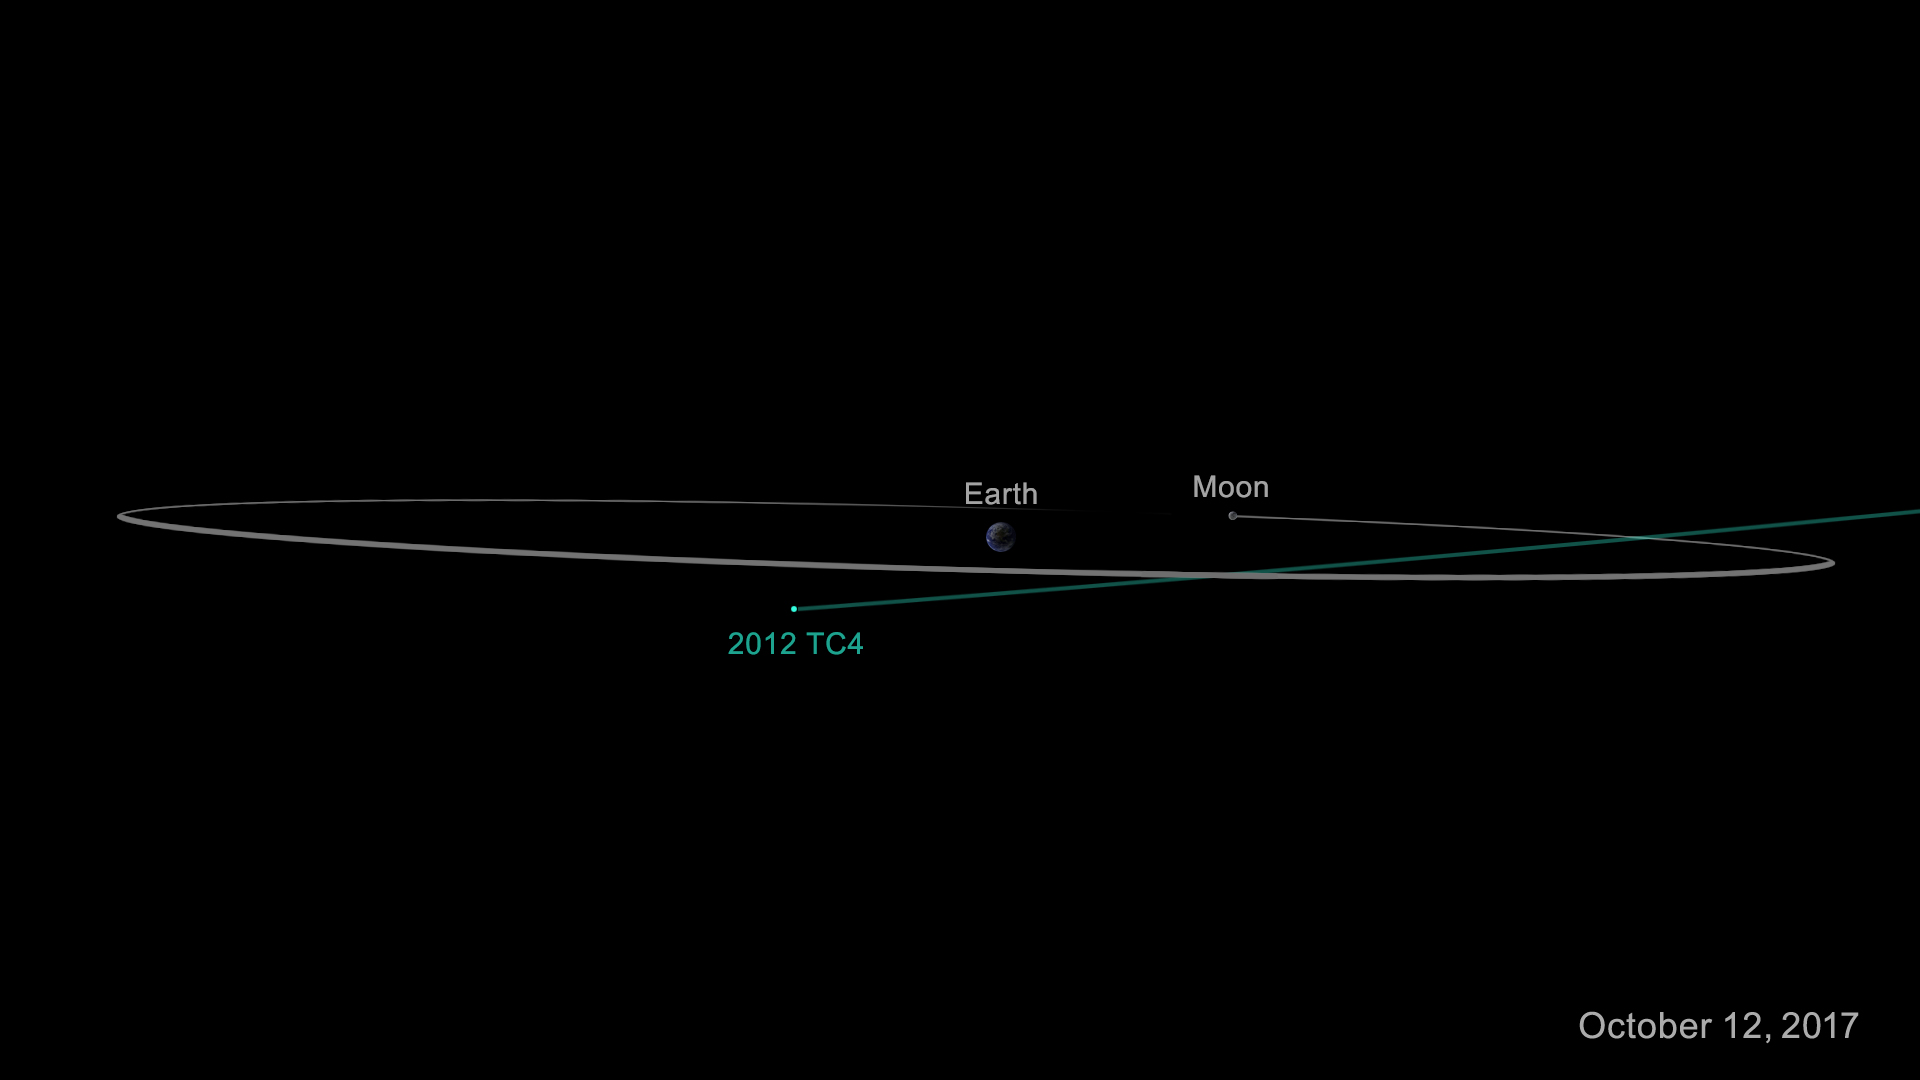 nasa asteroid projected path 2017 - photo #17